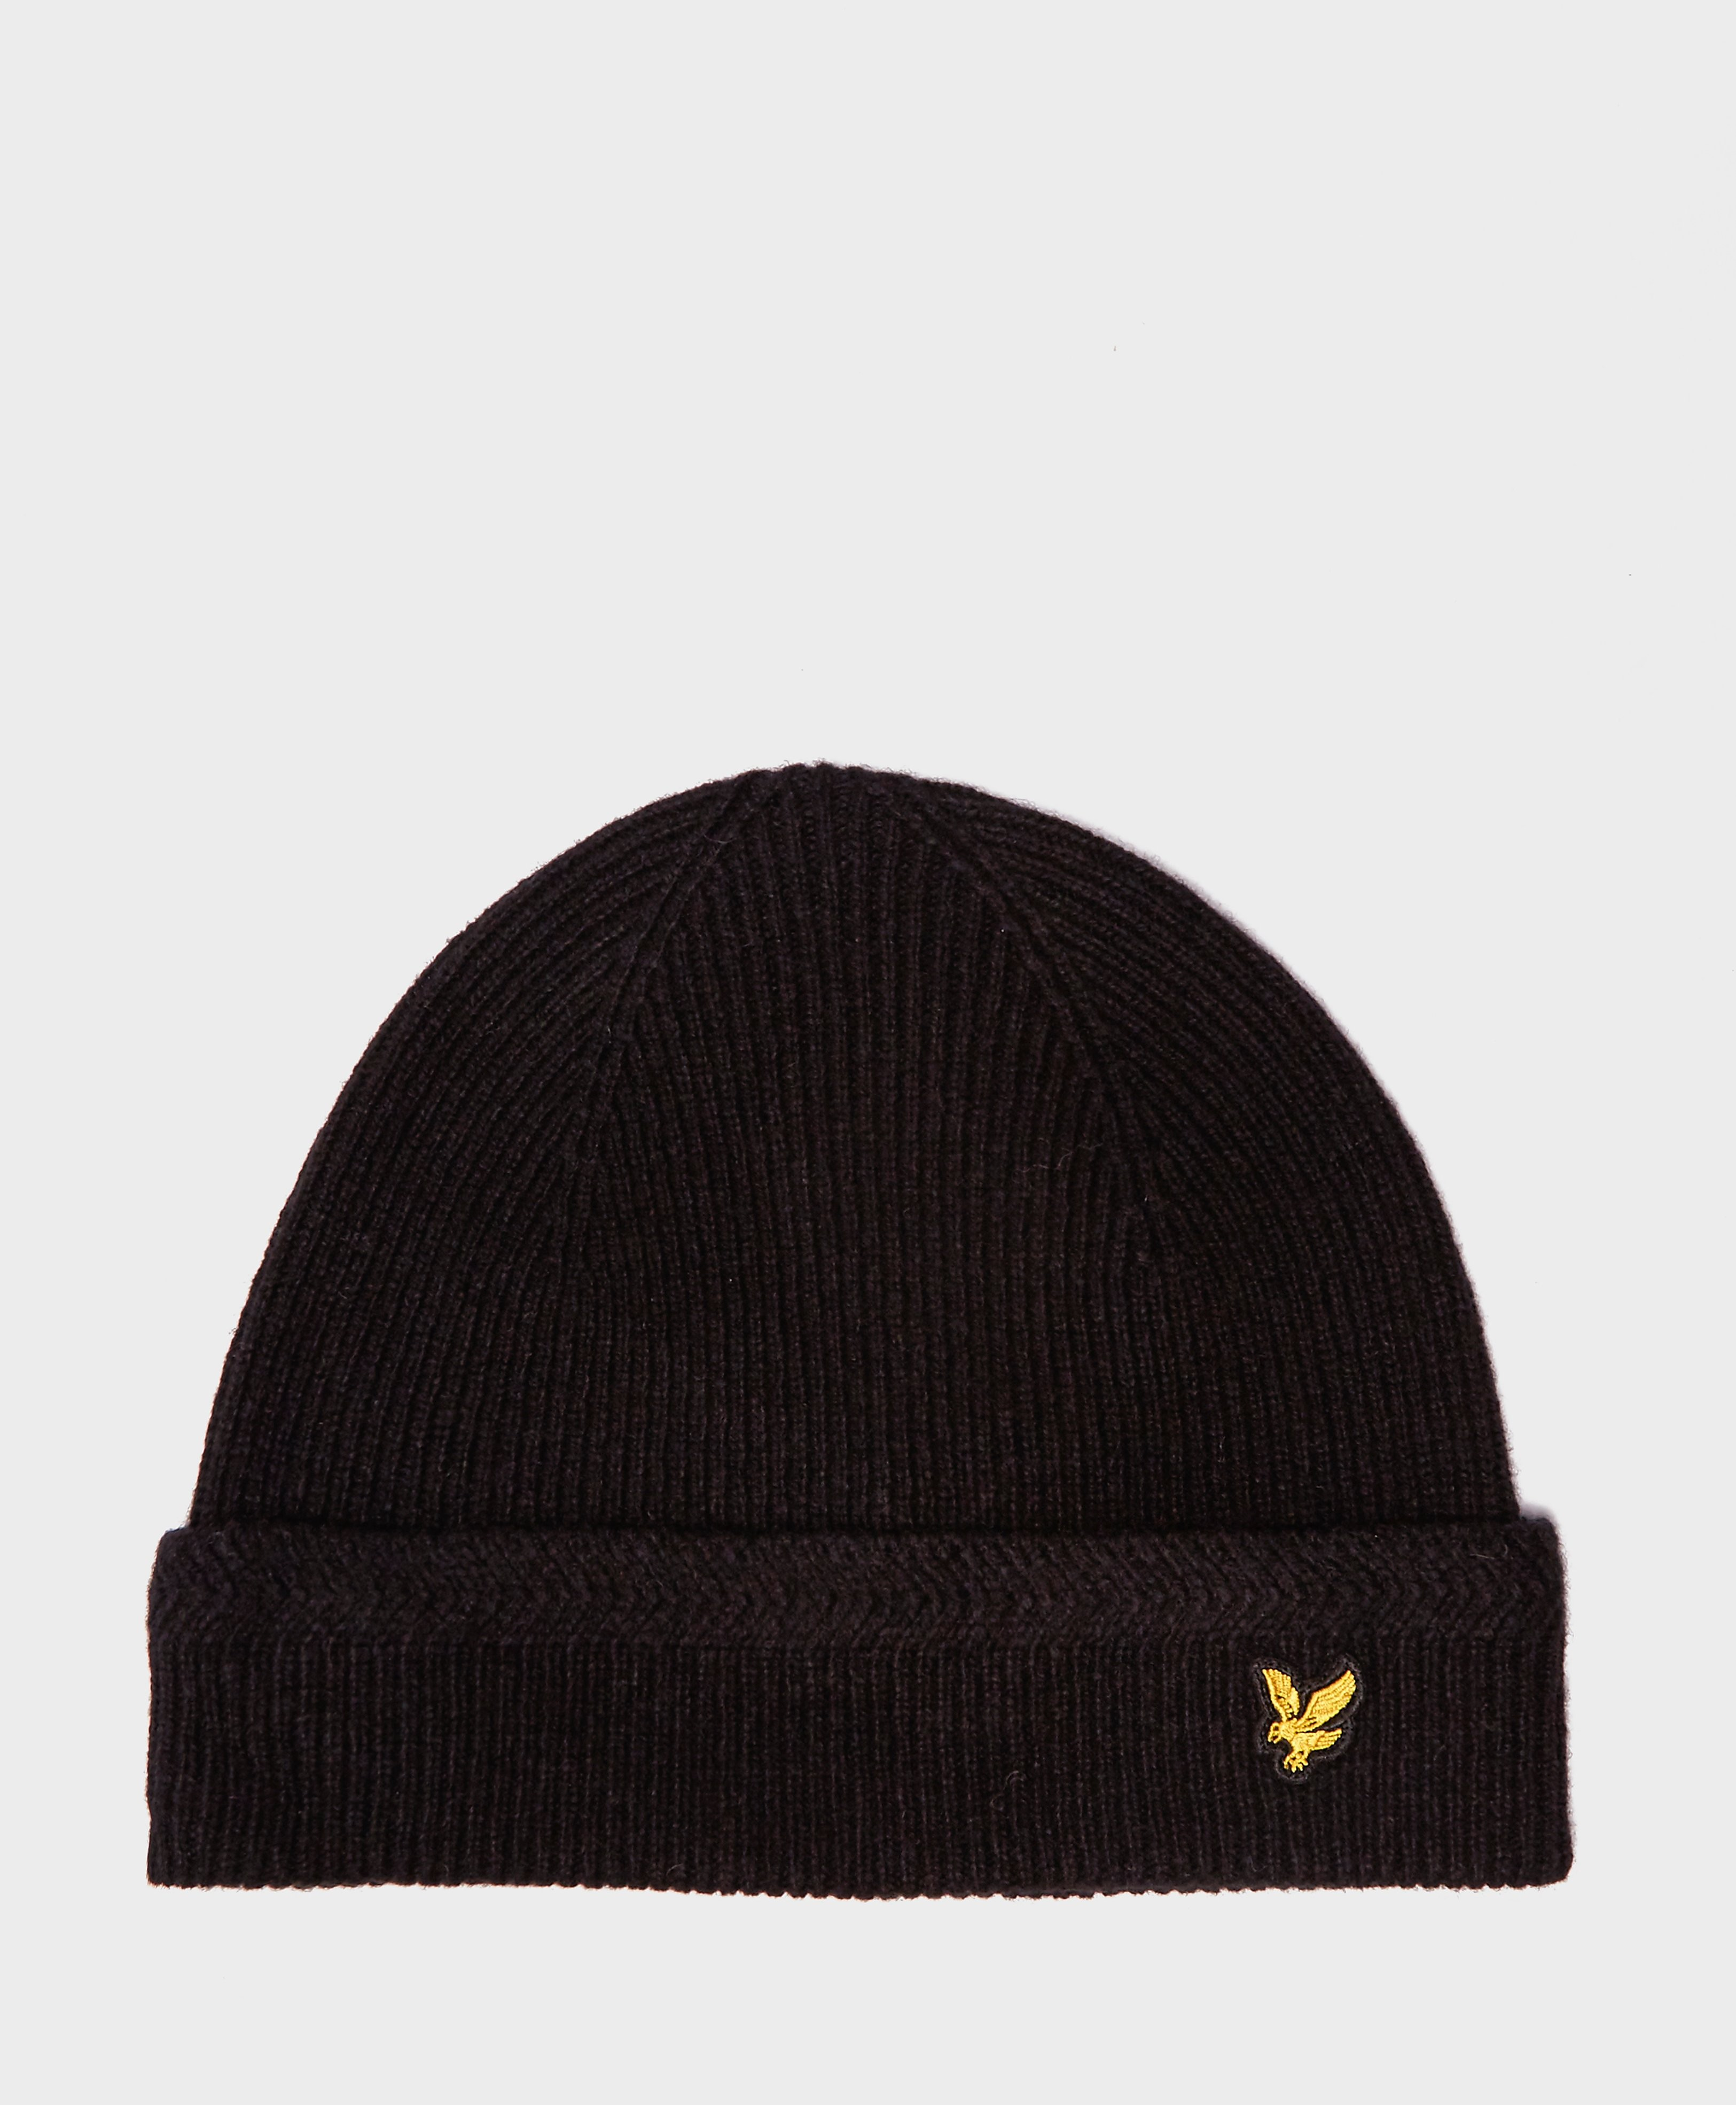 Lyle & Scott Rib Knit Hat